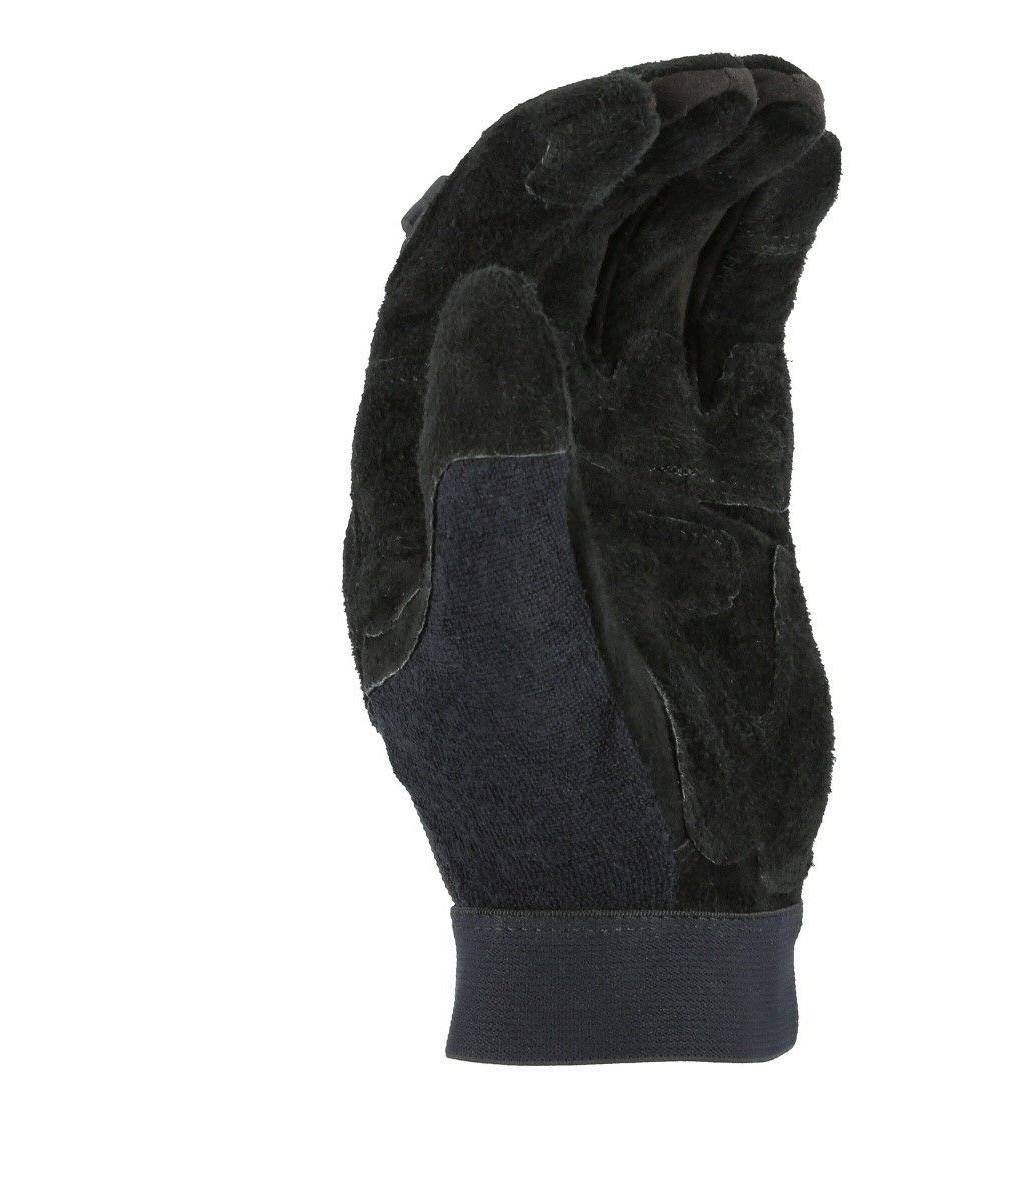 EXO-Tech Knuckle-Neoprene-Cowhide Leather Gloves Powersports-Motorcycle-ATV